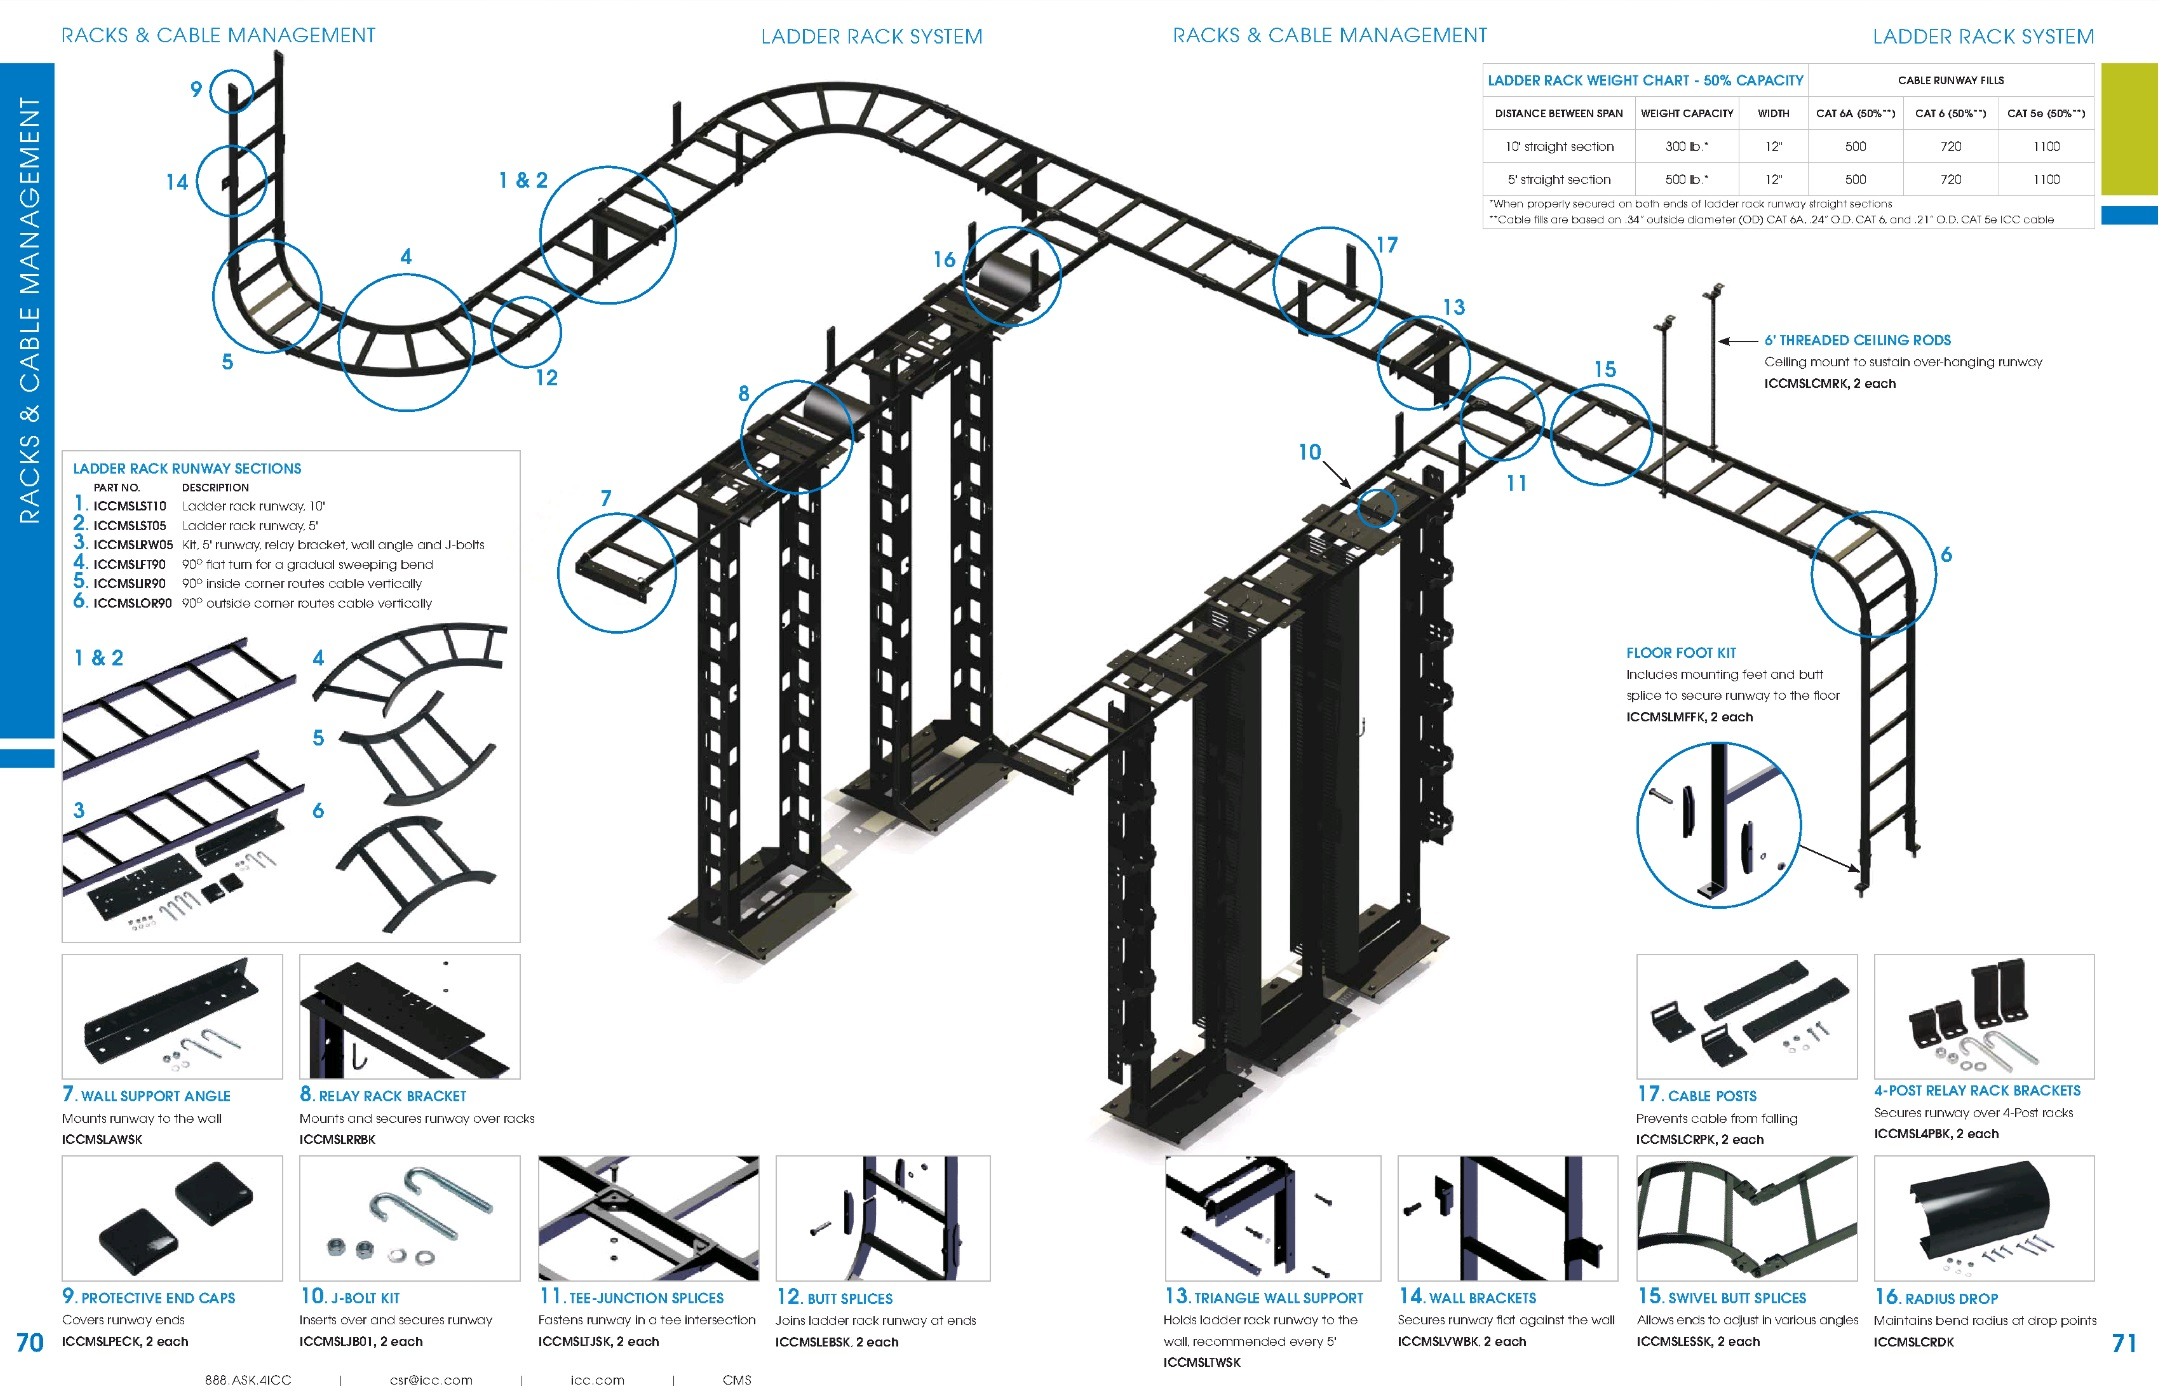 Ladder Rack Wire Managem Center Scr Time Delay Circuit Diagram Tradeoficcom Cable Management Racks Page 1 Cablemaster Com Rh